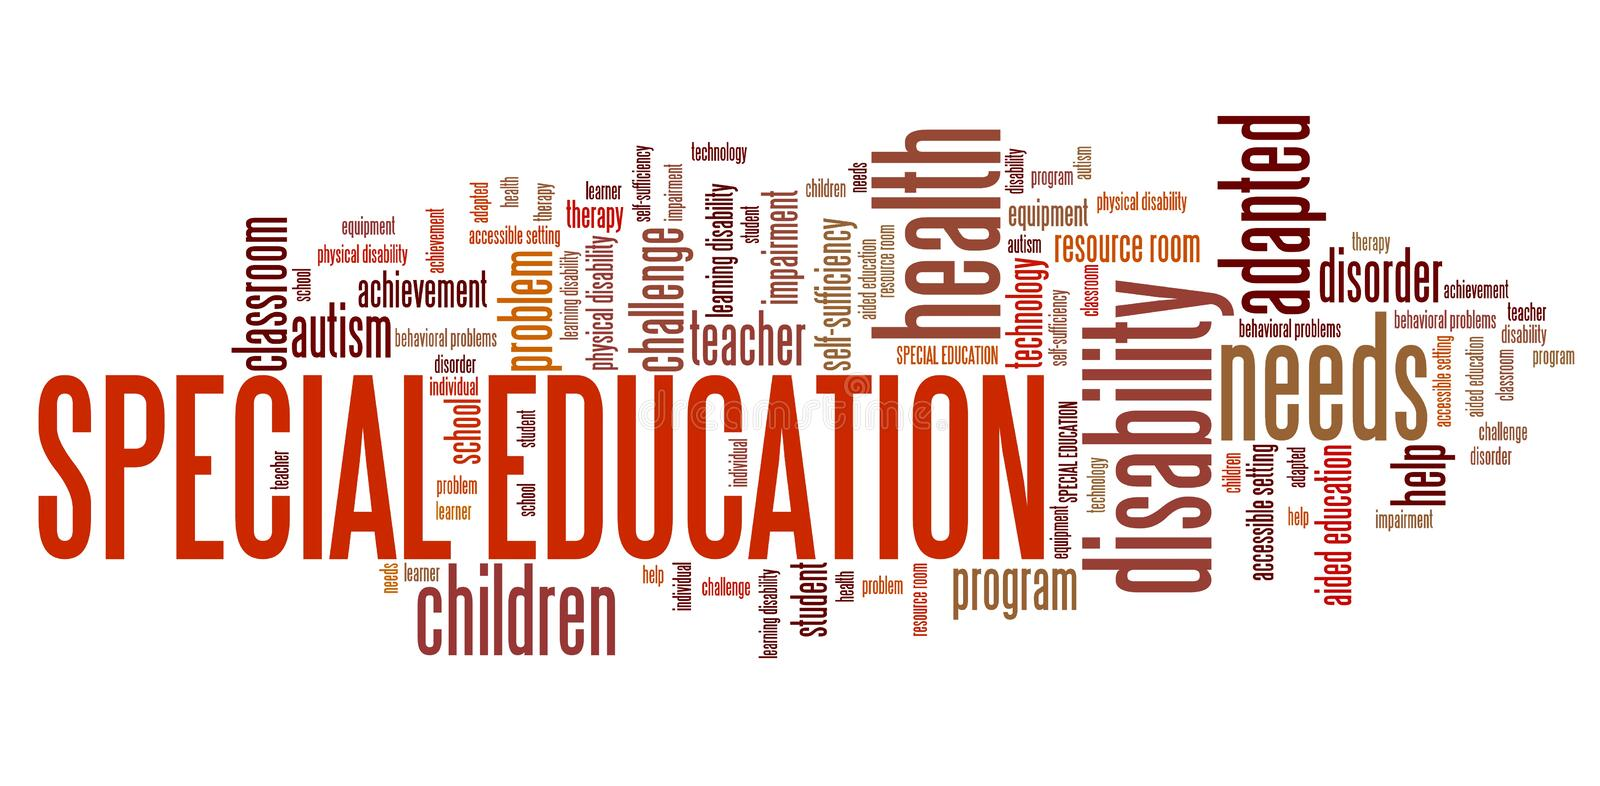 Special education. Needs - disability help word cloud royalty free illustration